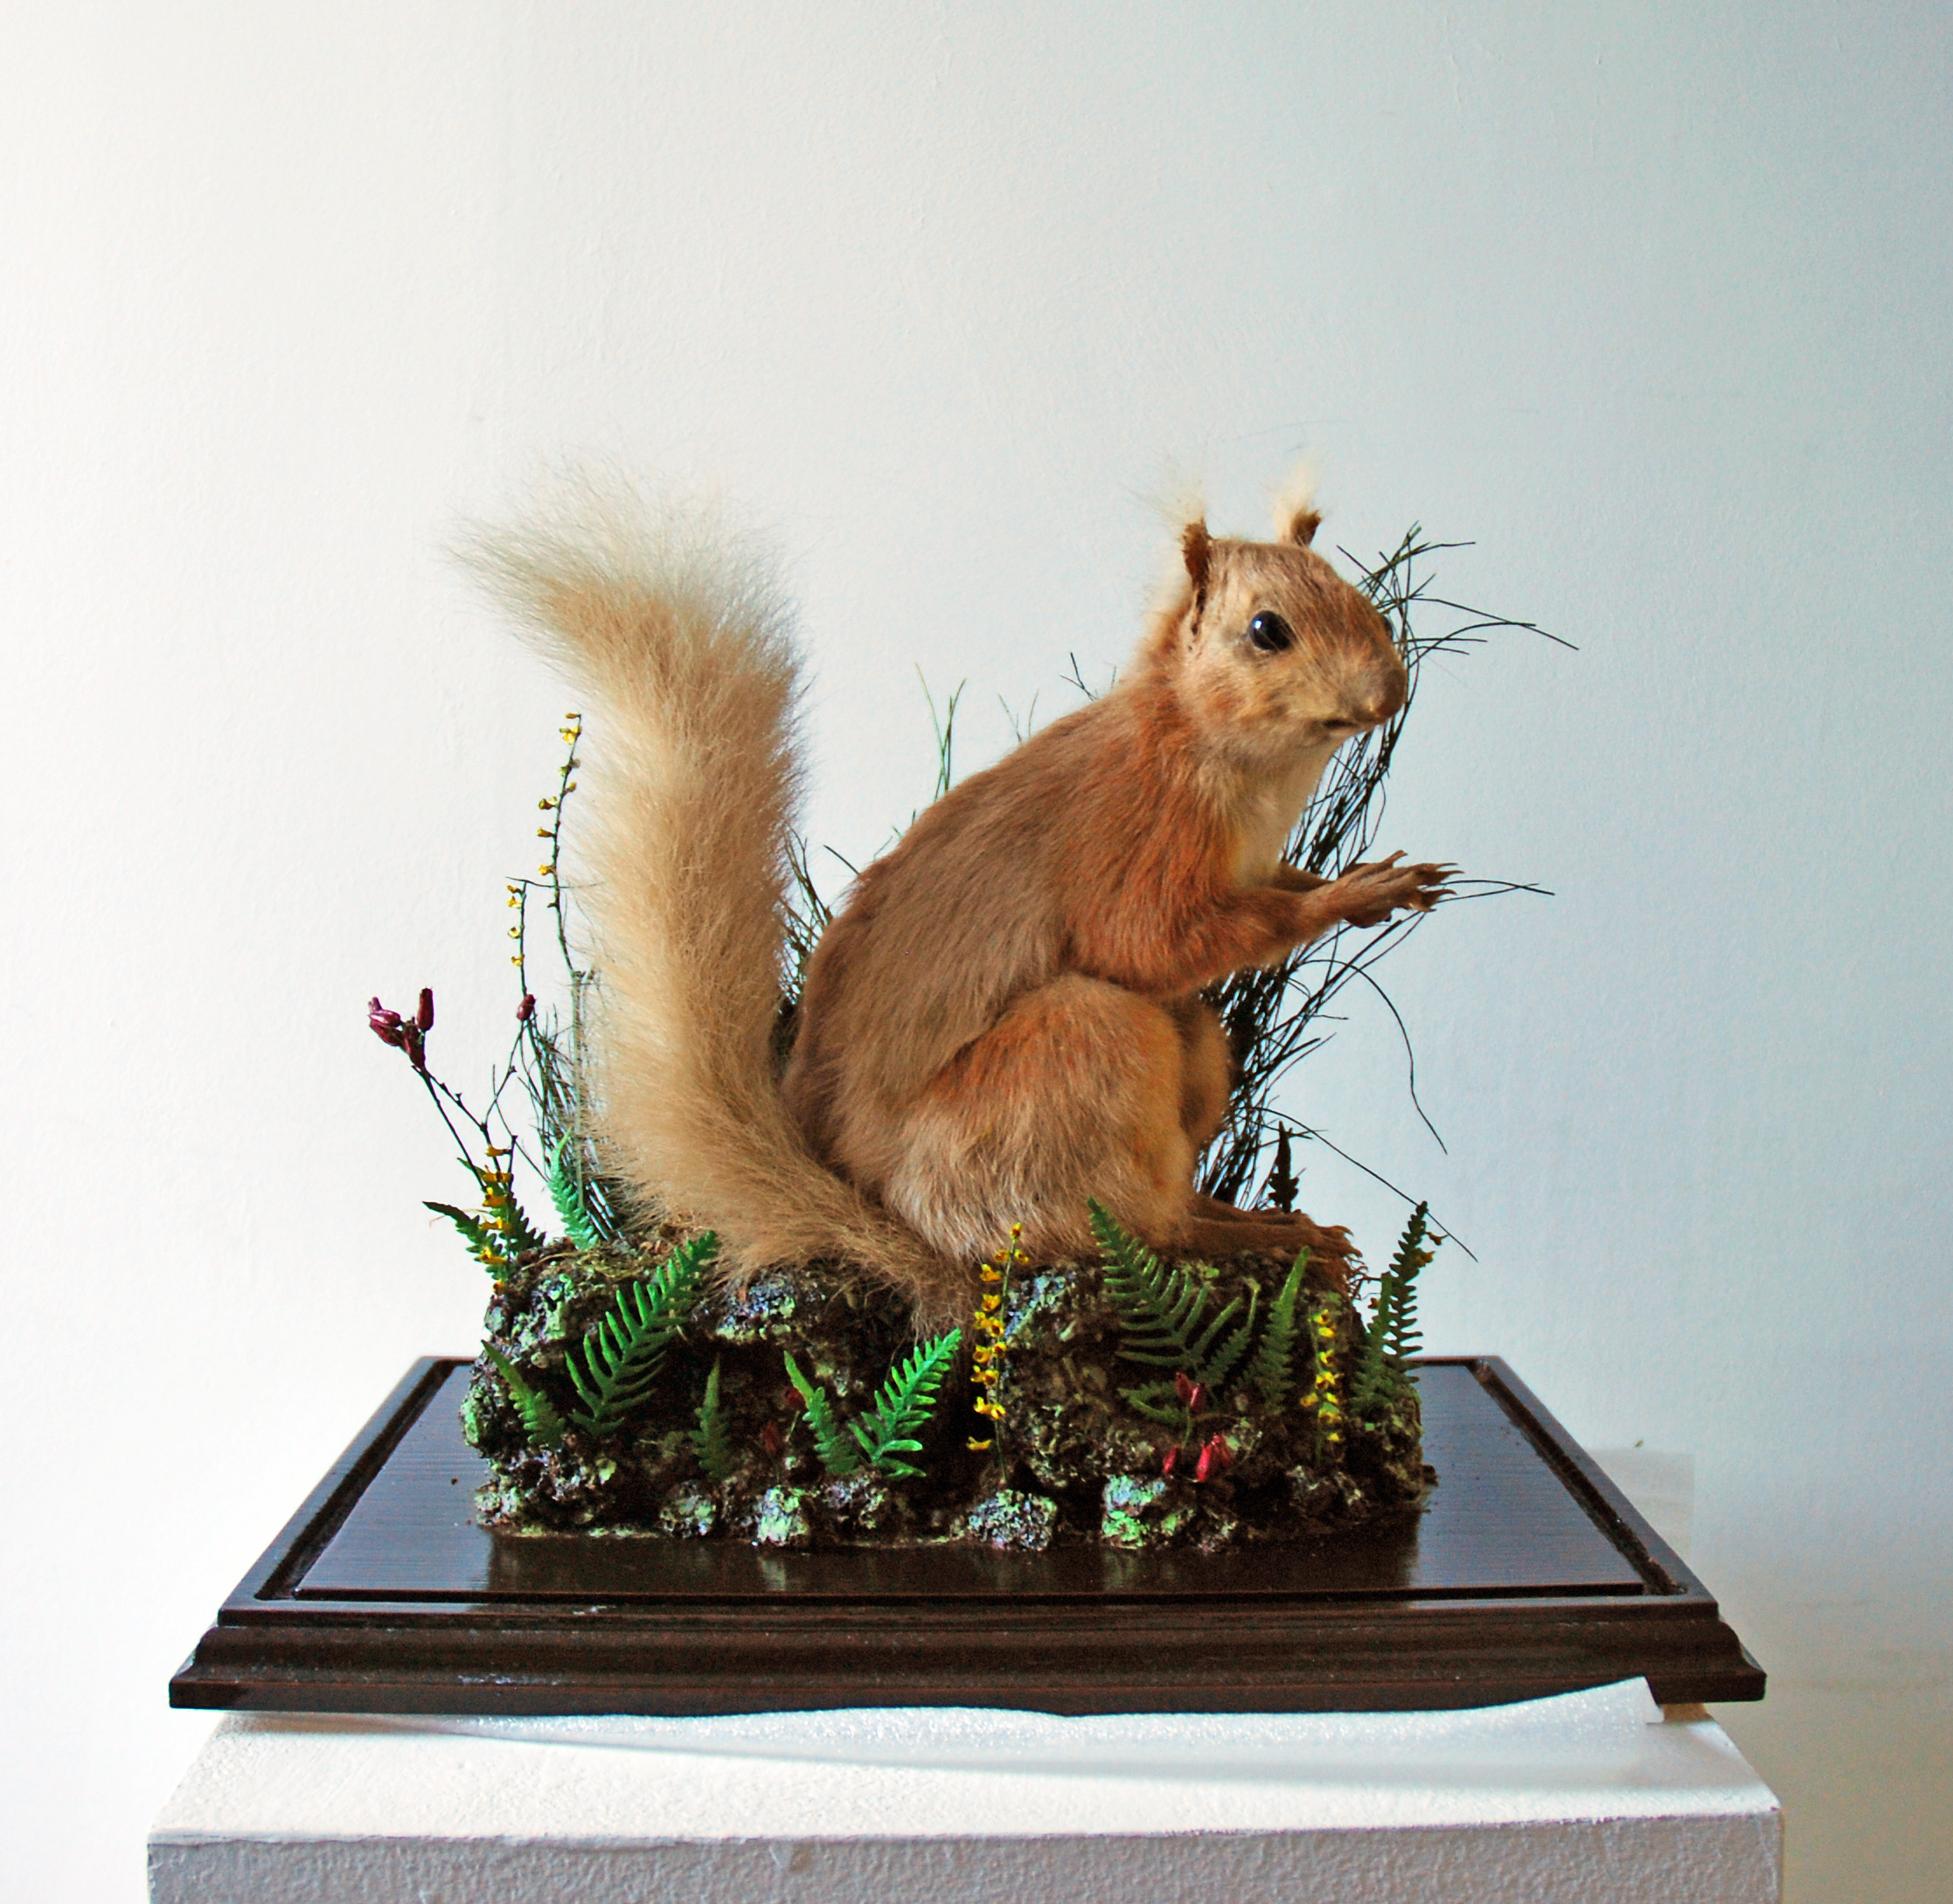 Squirrel without the glass